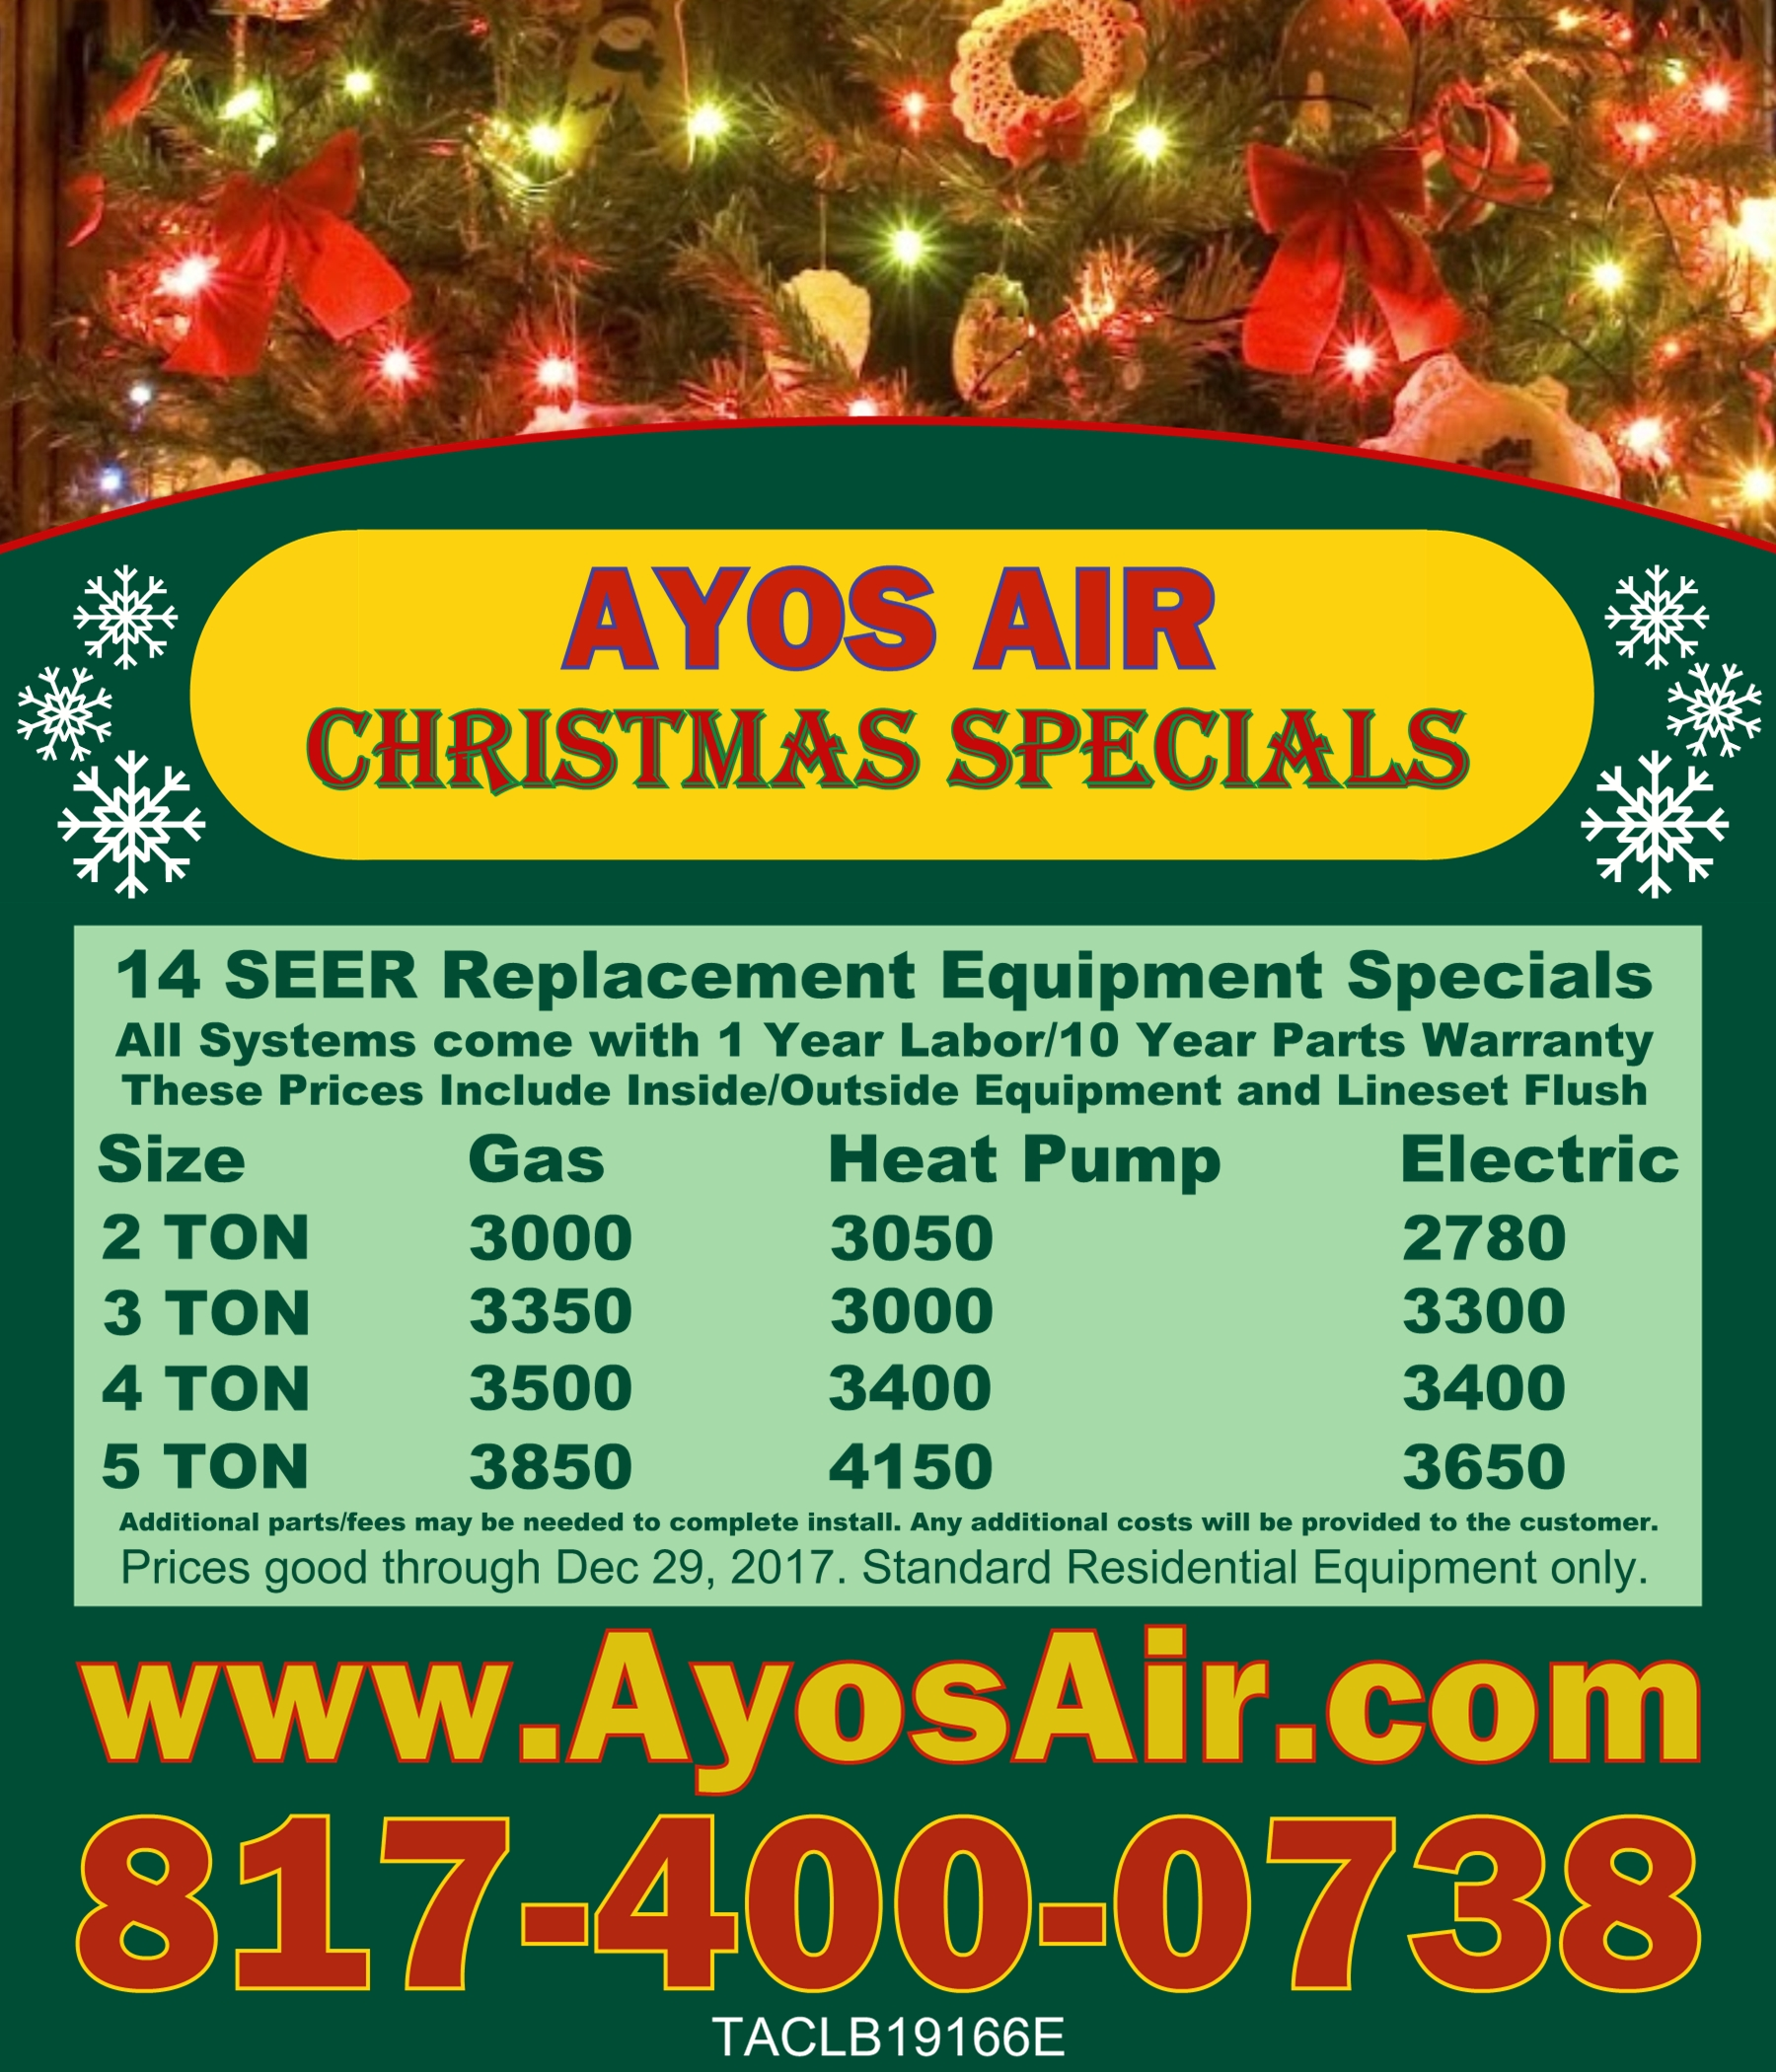 Christmas equipment specials with info